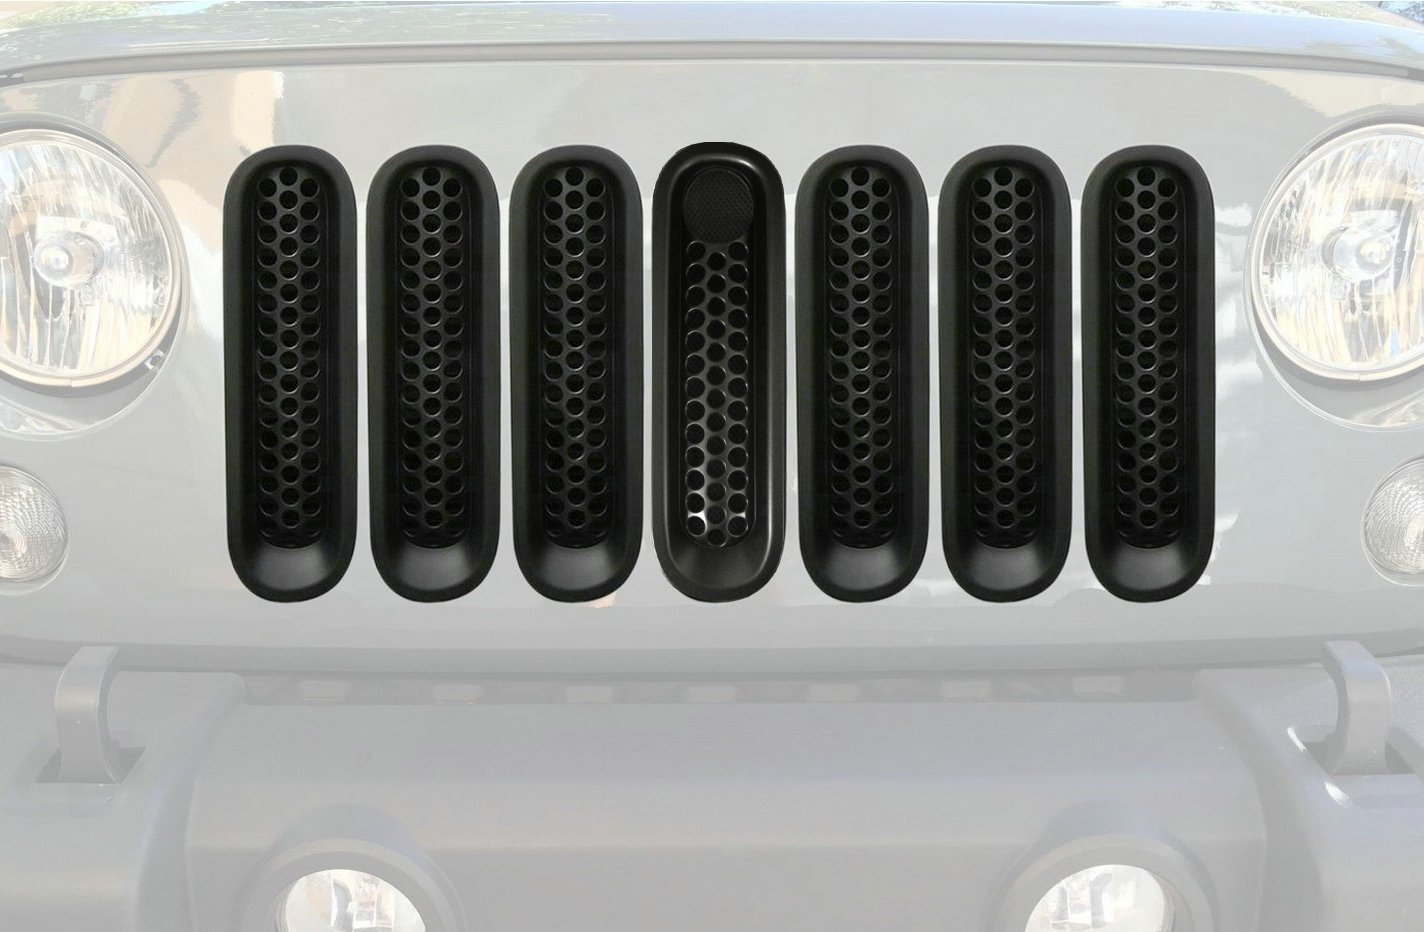 Bolaxin 7pcs Black Matt Front Grill Mesh Grille Insert with Key Hole Fit Hood Lock for Jeep Wrangler Jk Rubicon Sahara /& Unlimited 2007-2015 Upgrade Clip in Version